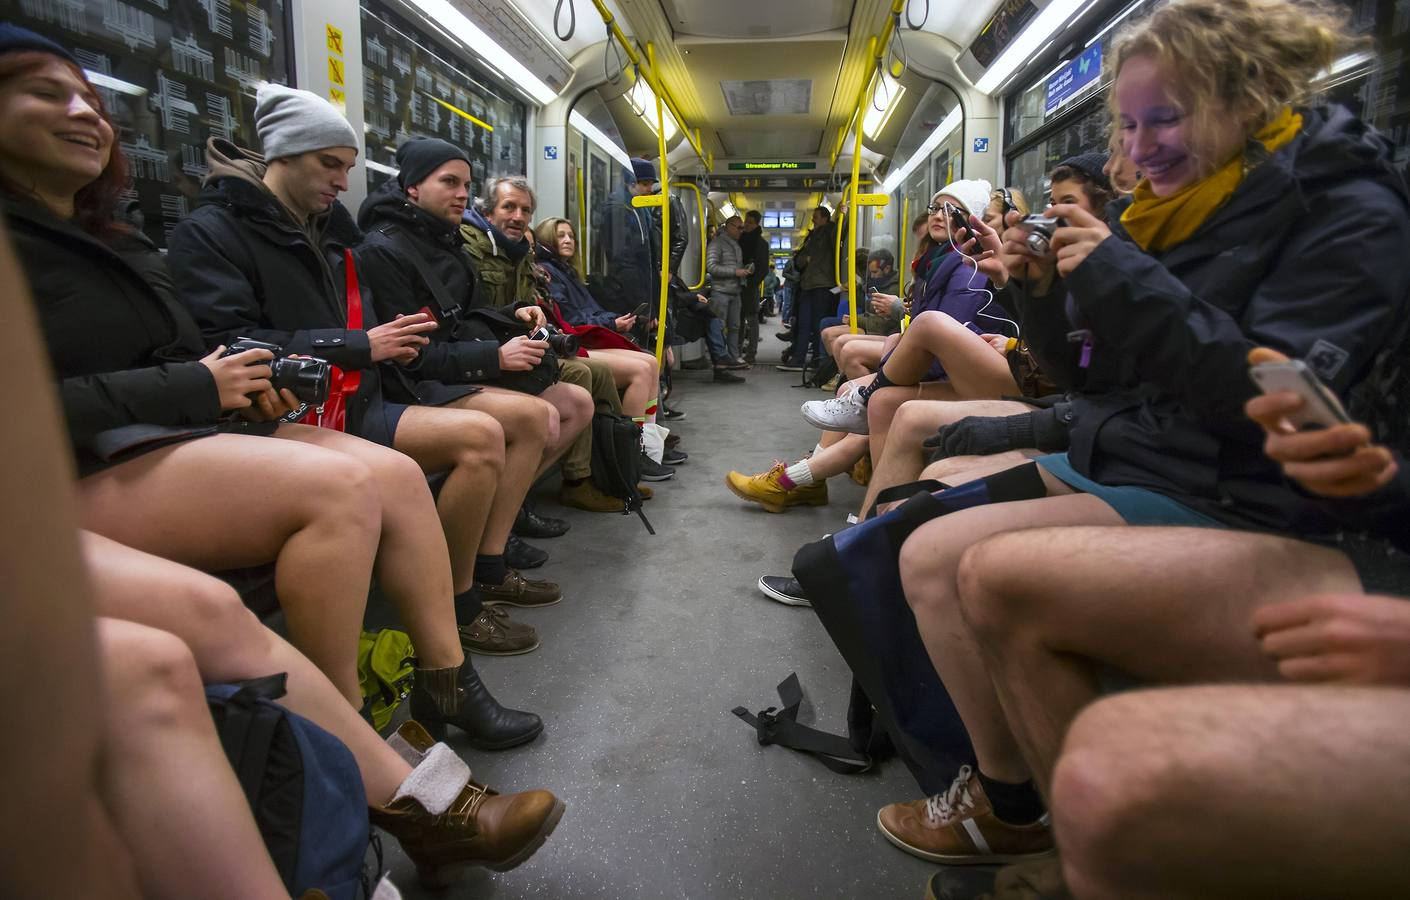 People take part in the No Pants Subway Ride in Berlin